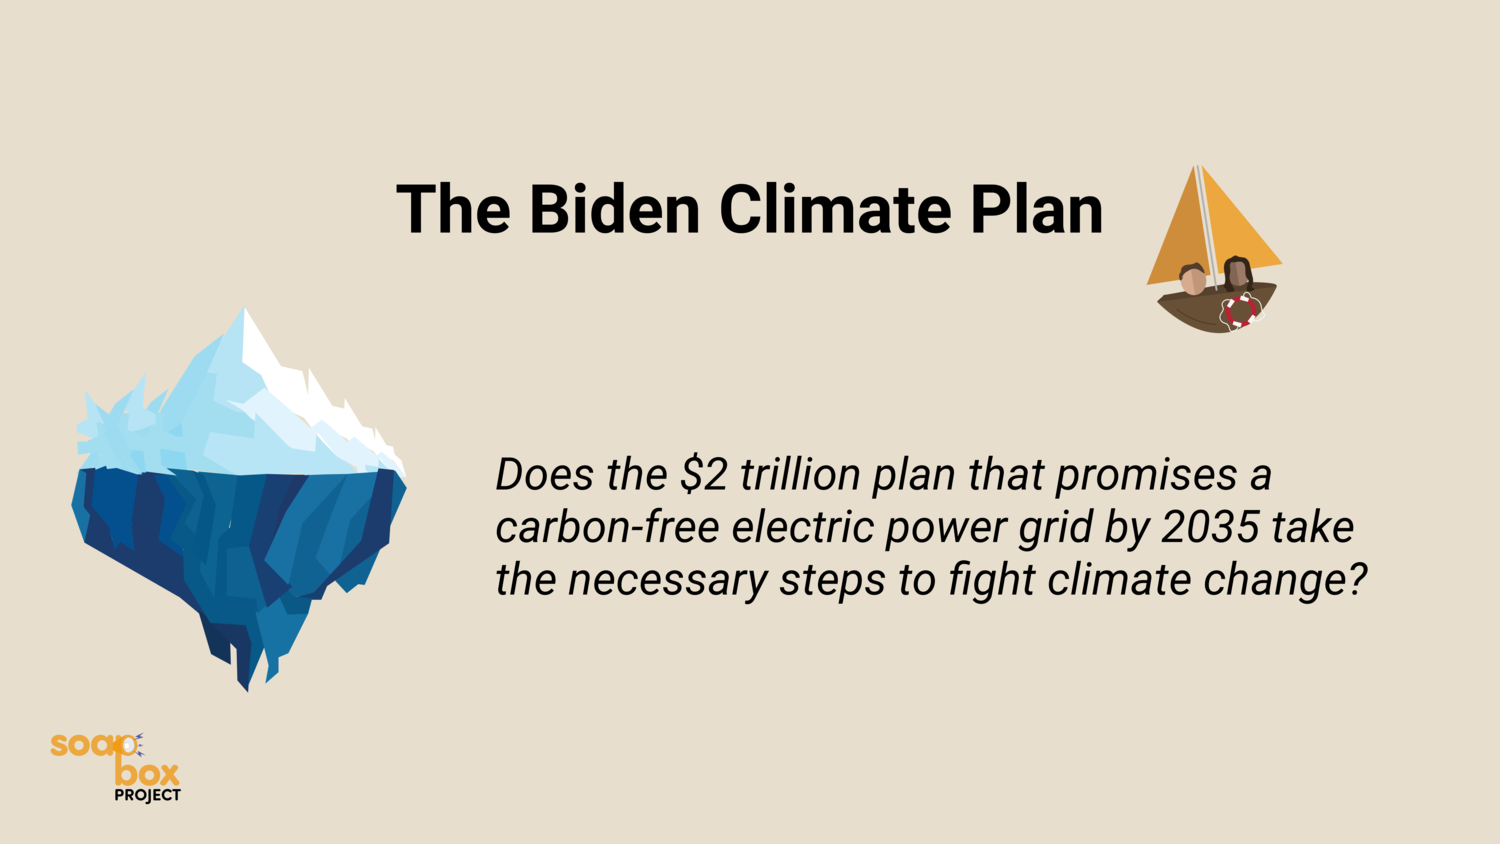 Alt: Does the $2 trillion plan that promises a carbon-free electric power grid by 2035 take the necessary steps to fight climate change?